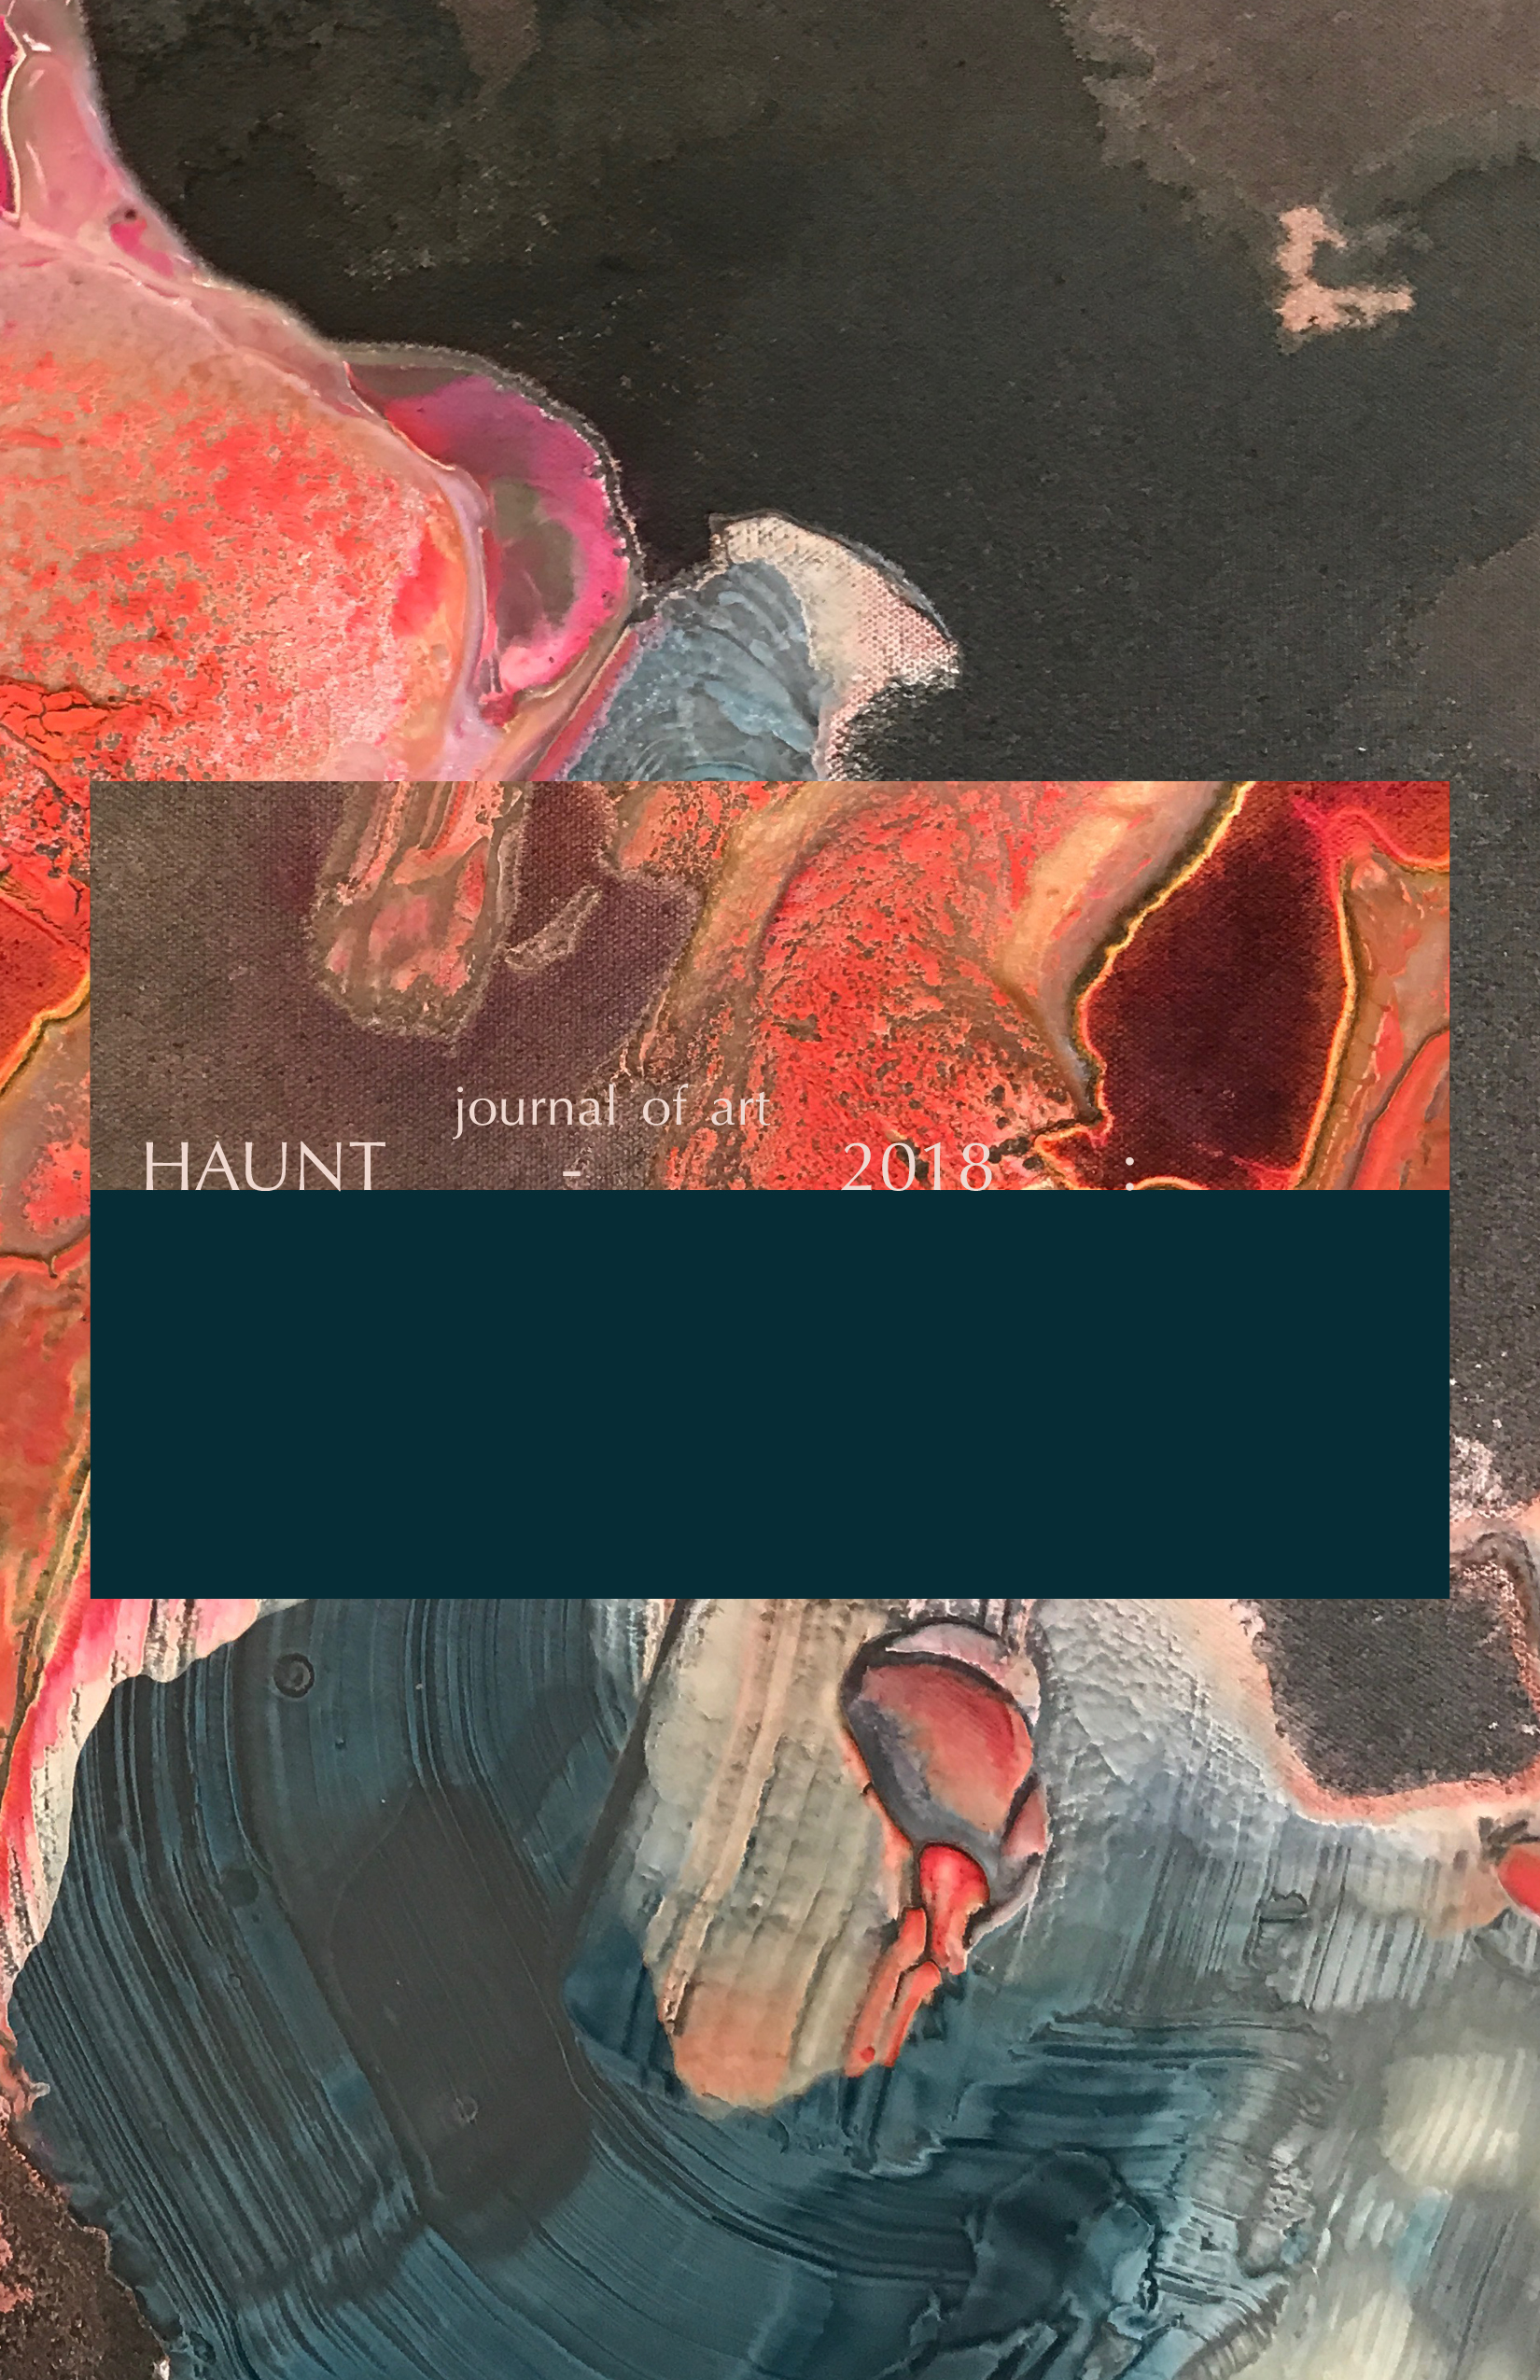 Haunt Journal of Art, Volume 5 - Edited by Charisse Pearlina Weston and Linette Park.Thematized on the status of the radical in contemporary thought, this issue features work by a diverse array of creative practitioners whose work explores this topic from the margins.IN THIS ISSUEArtwork by visual artists Regina Agu, Andrea Welton, Cosmo Whyte and Antoine Williams.Essays and poetry by emerging and established writers: S. Erin Batiste, Mali Collins-White, Terrance Hayes, Douglas Kearney, Prathna Lor, D.S. Marriott, John Pluecker, Traci-Ann Wint-Hayles, and Frank Wilderson III.Also in this issue: An interview with Erin Christovale (Assistant Curator, Hammer Museum) conducted by Editor-in-Chief Charisse Pearlina Weston, and Managing Editor, Linette Park.